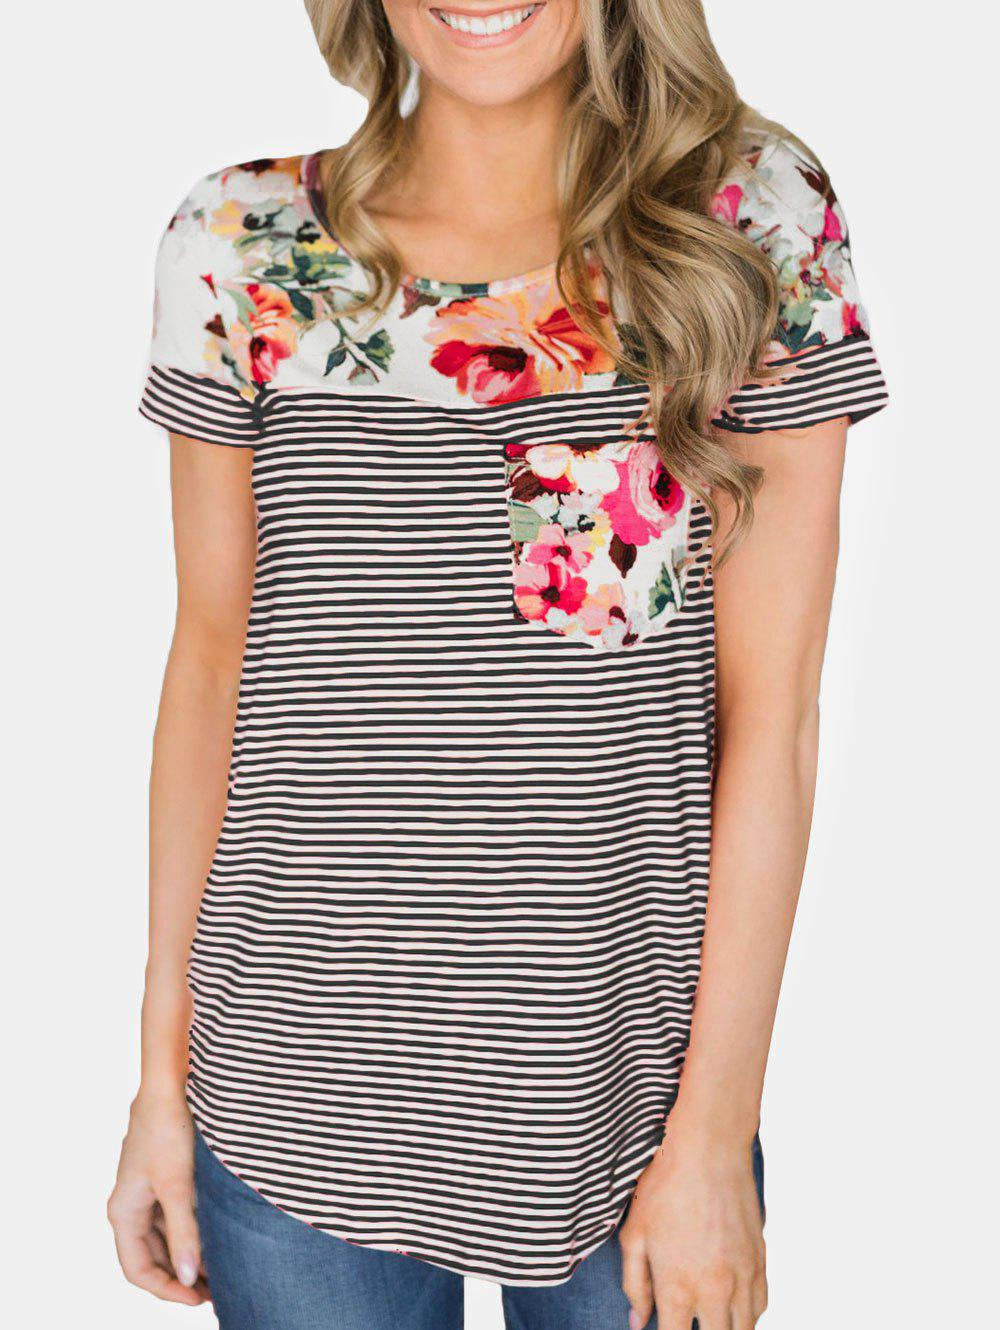 Shops Floral Print Short Sleeve Striped Tee